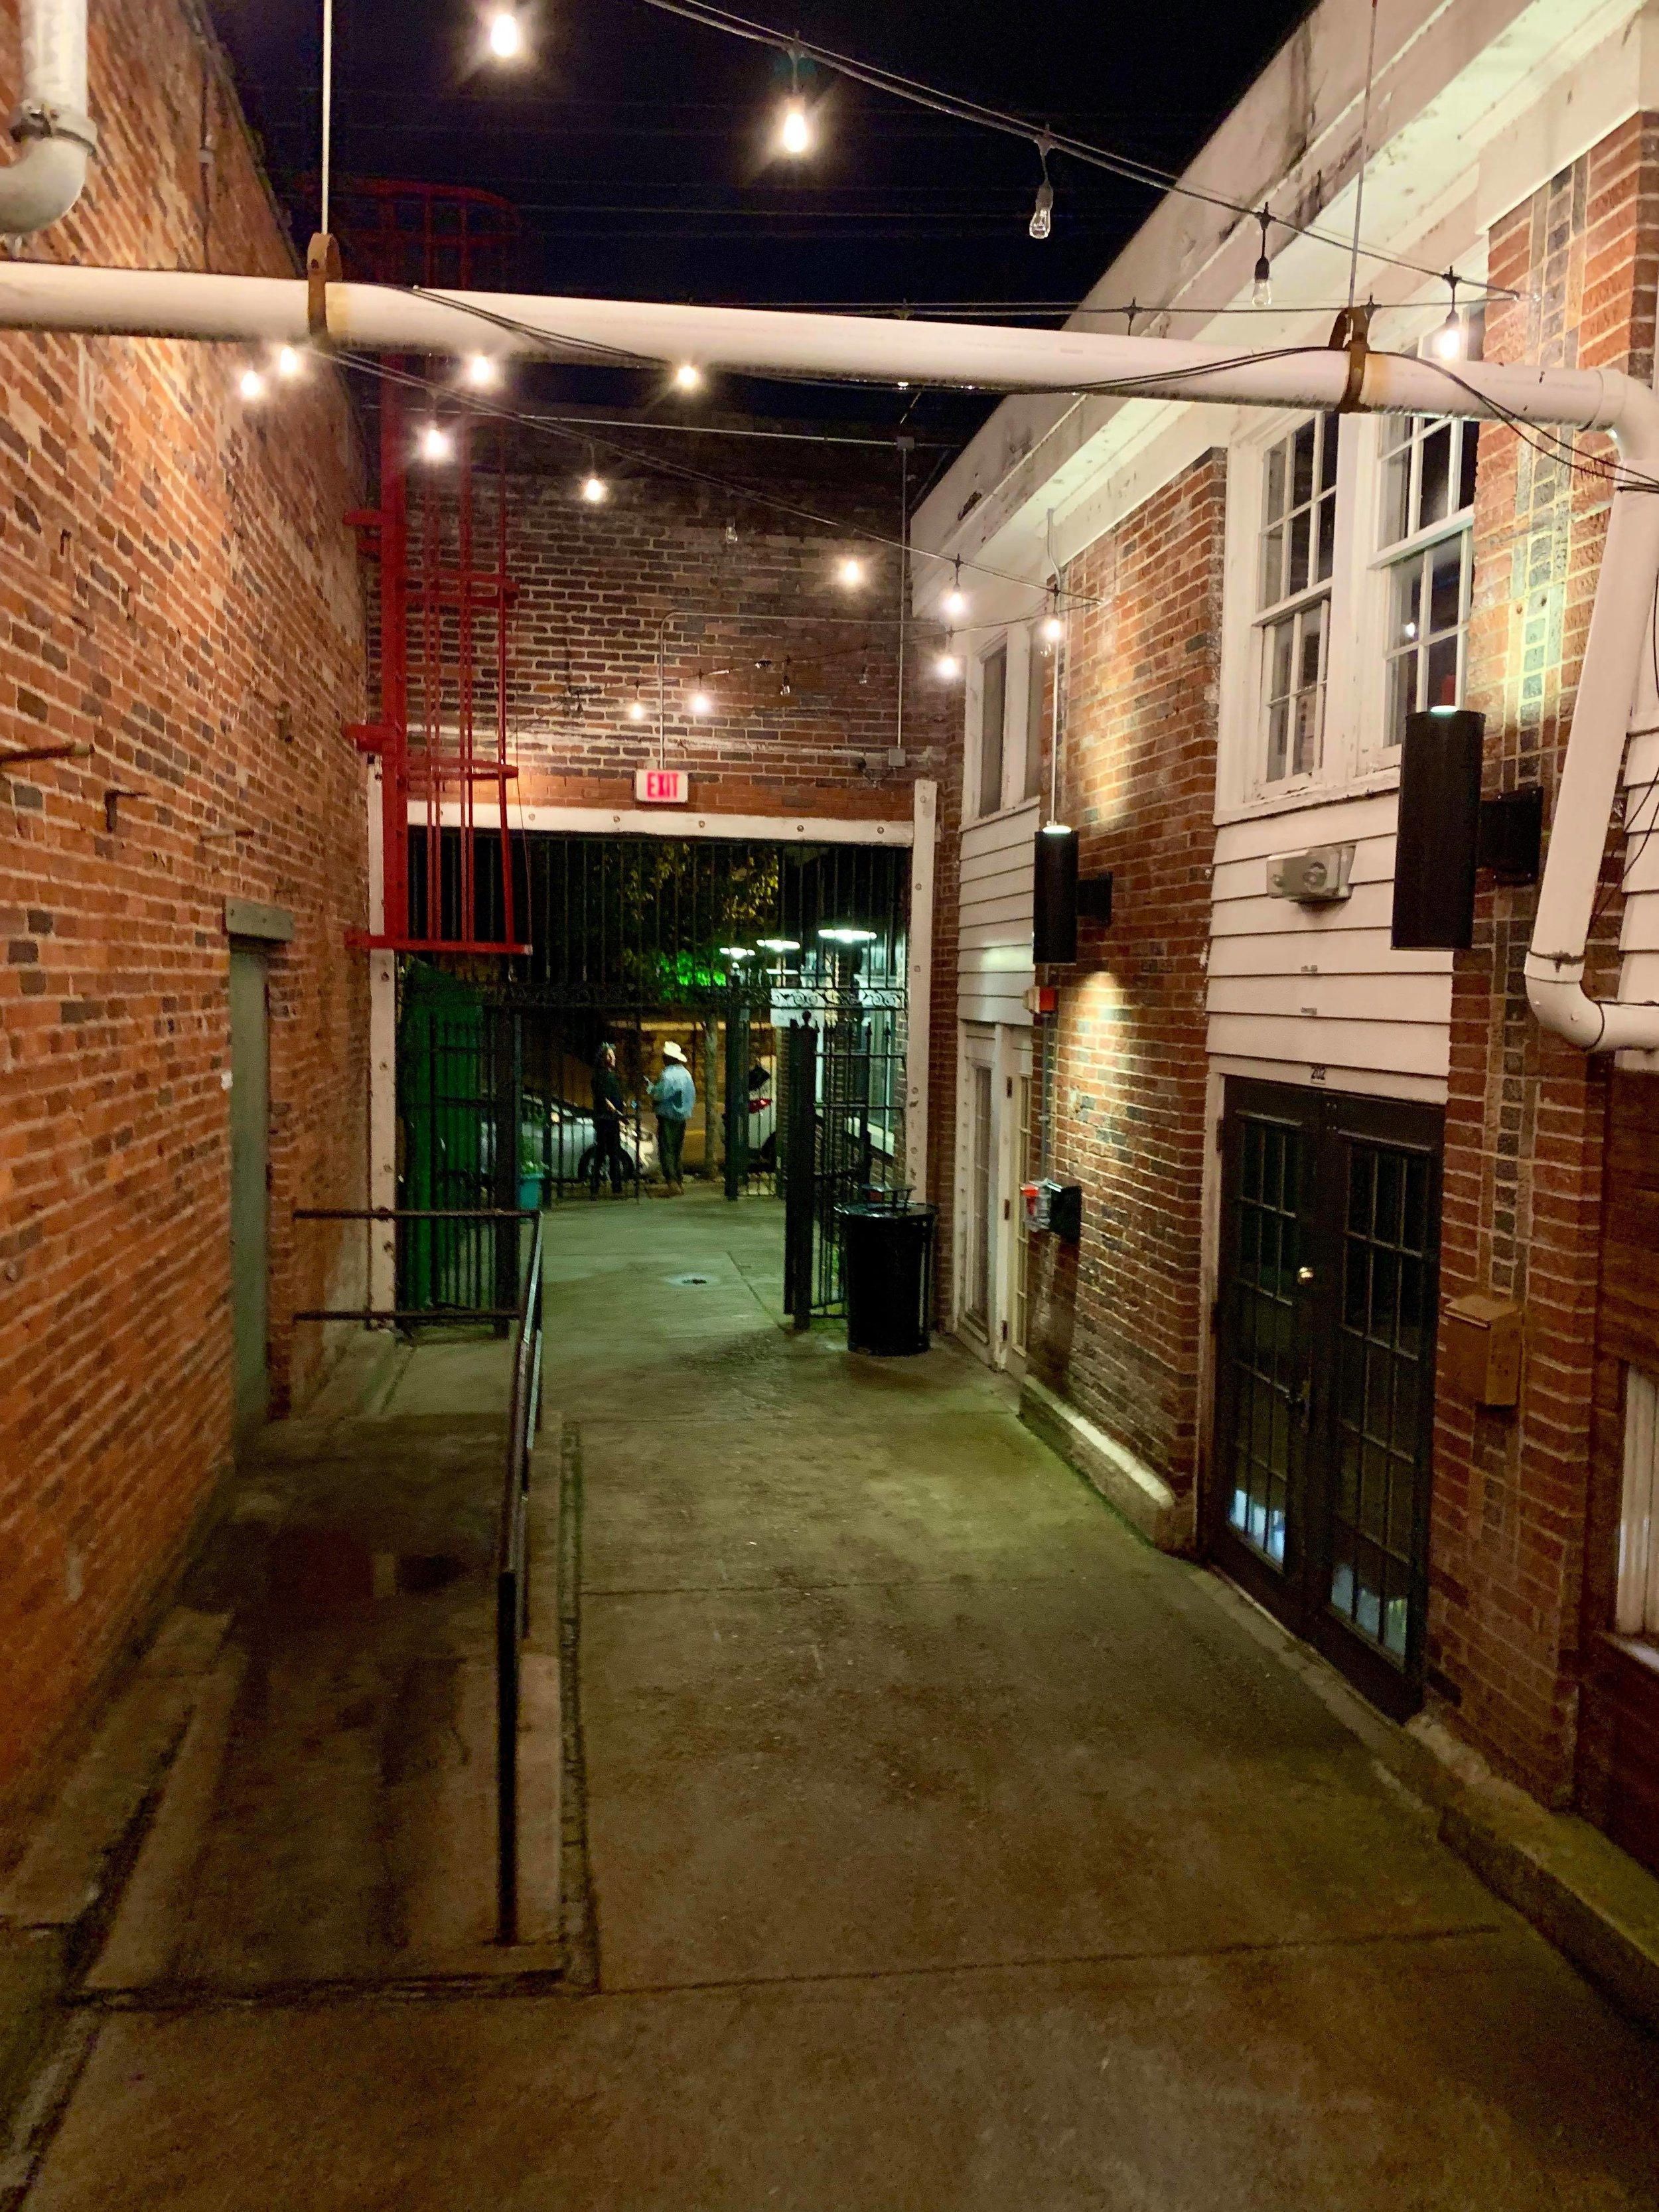 - With its entrance located in an alleyway, Old Glory might be the most mysterious place to grab a drink in all of Nashville.